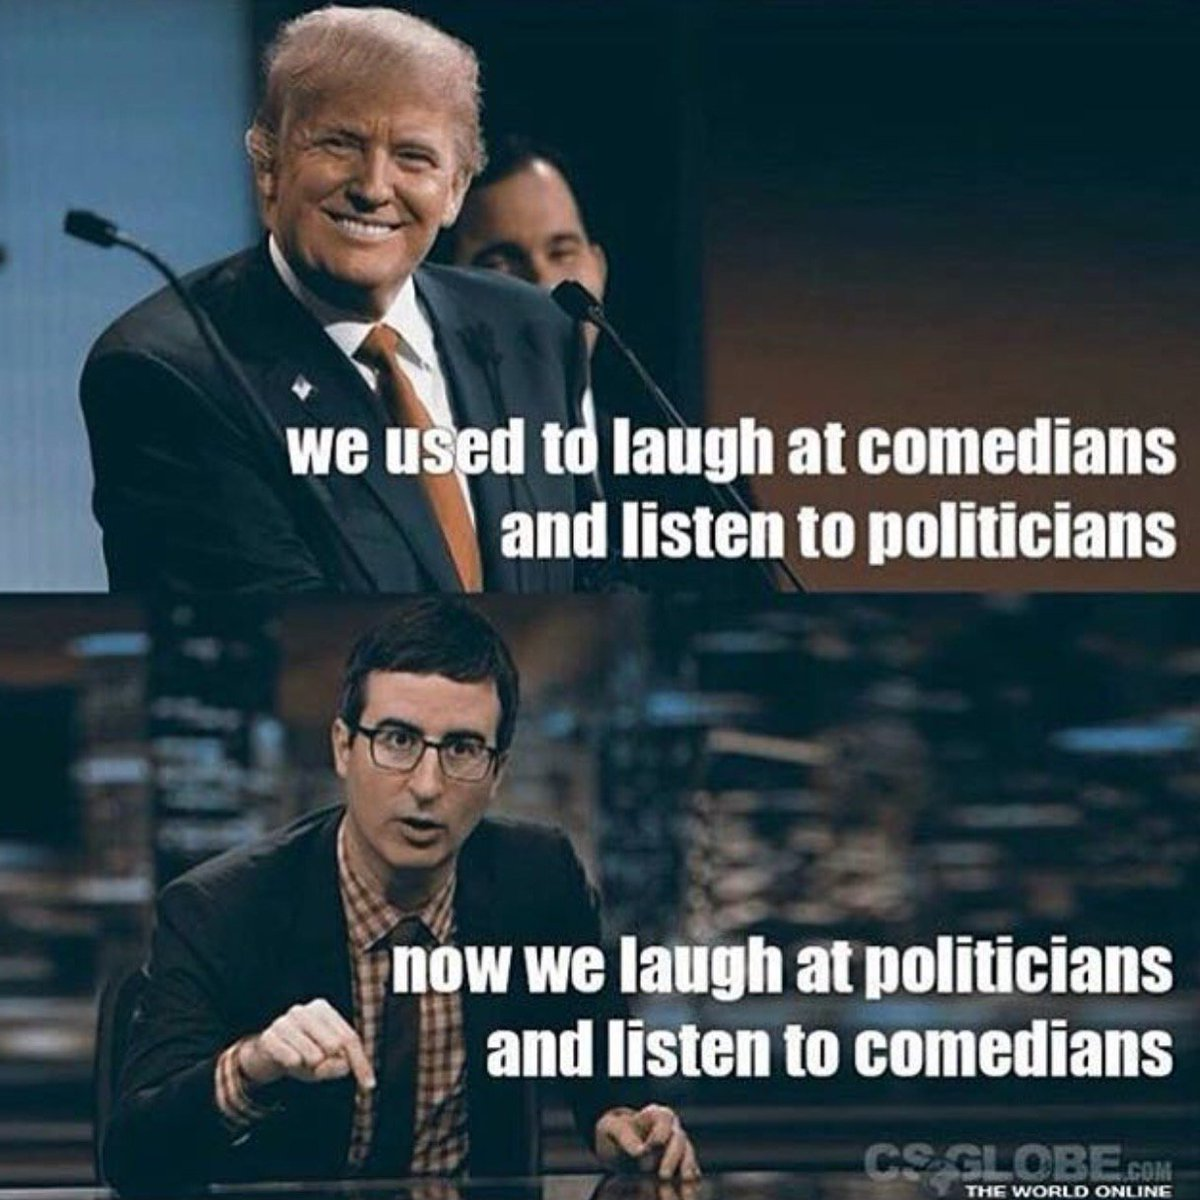 Funny how things change... #politicsorcomedy https://t.co/yVETTEME9t